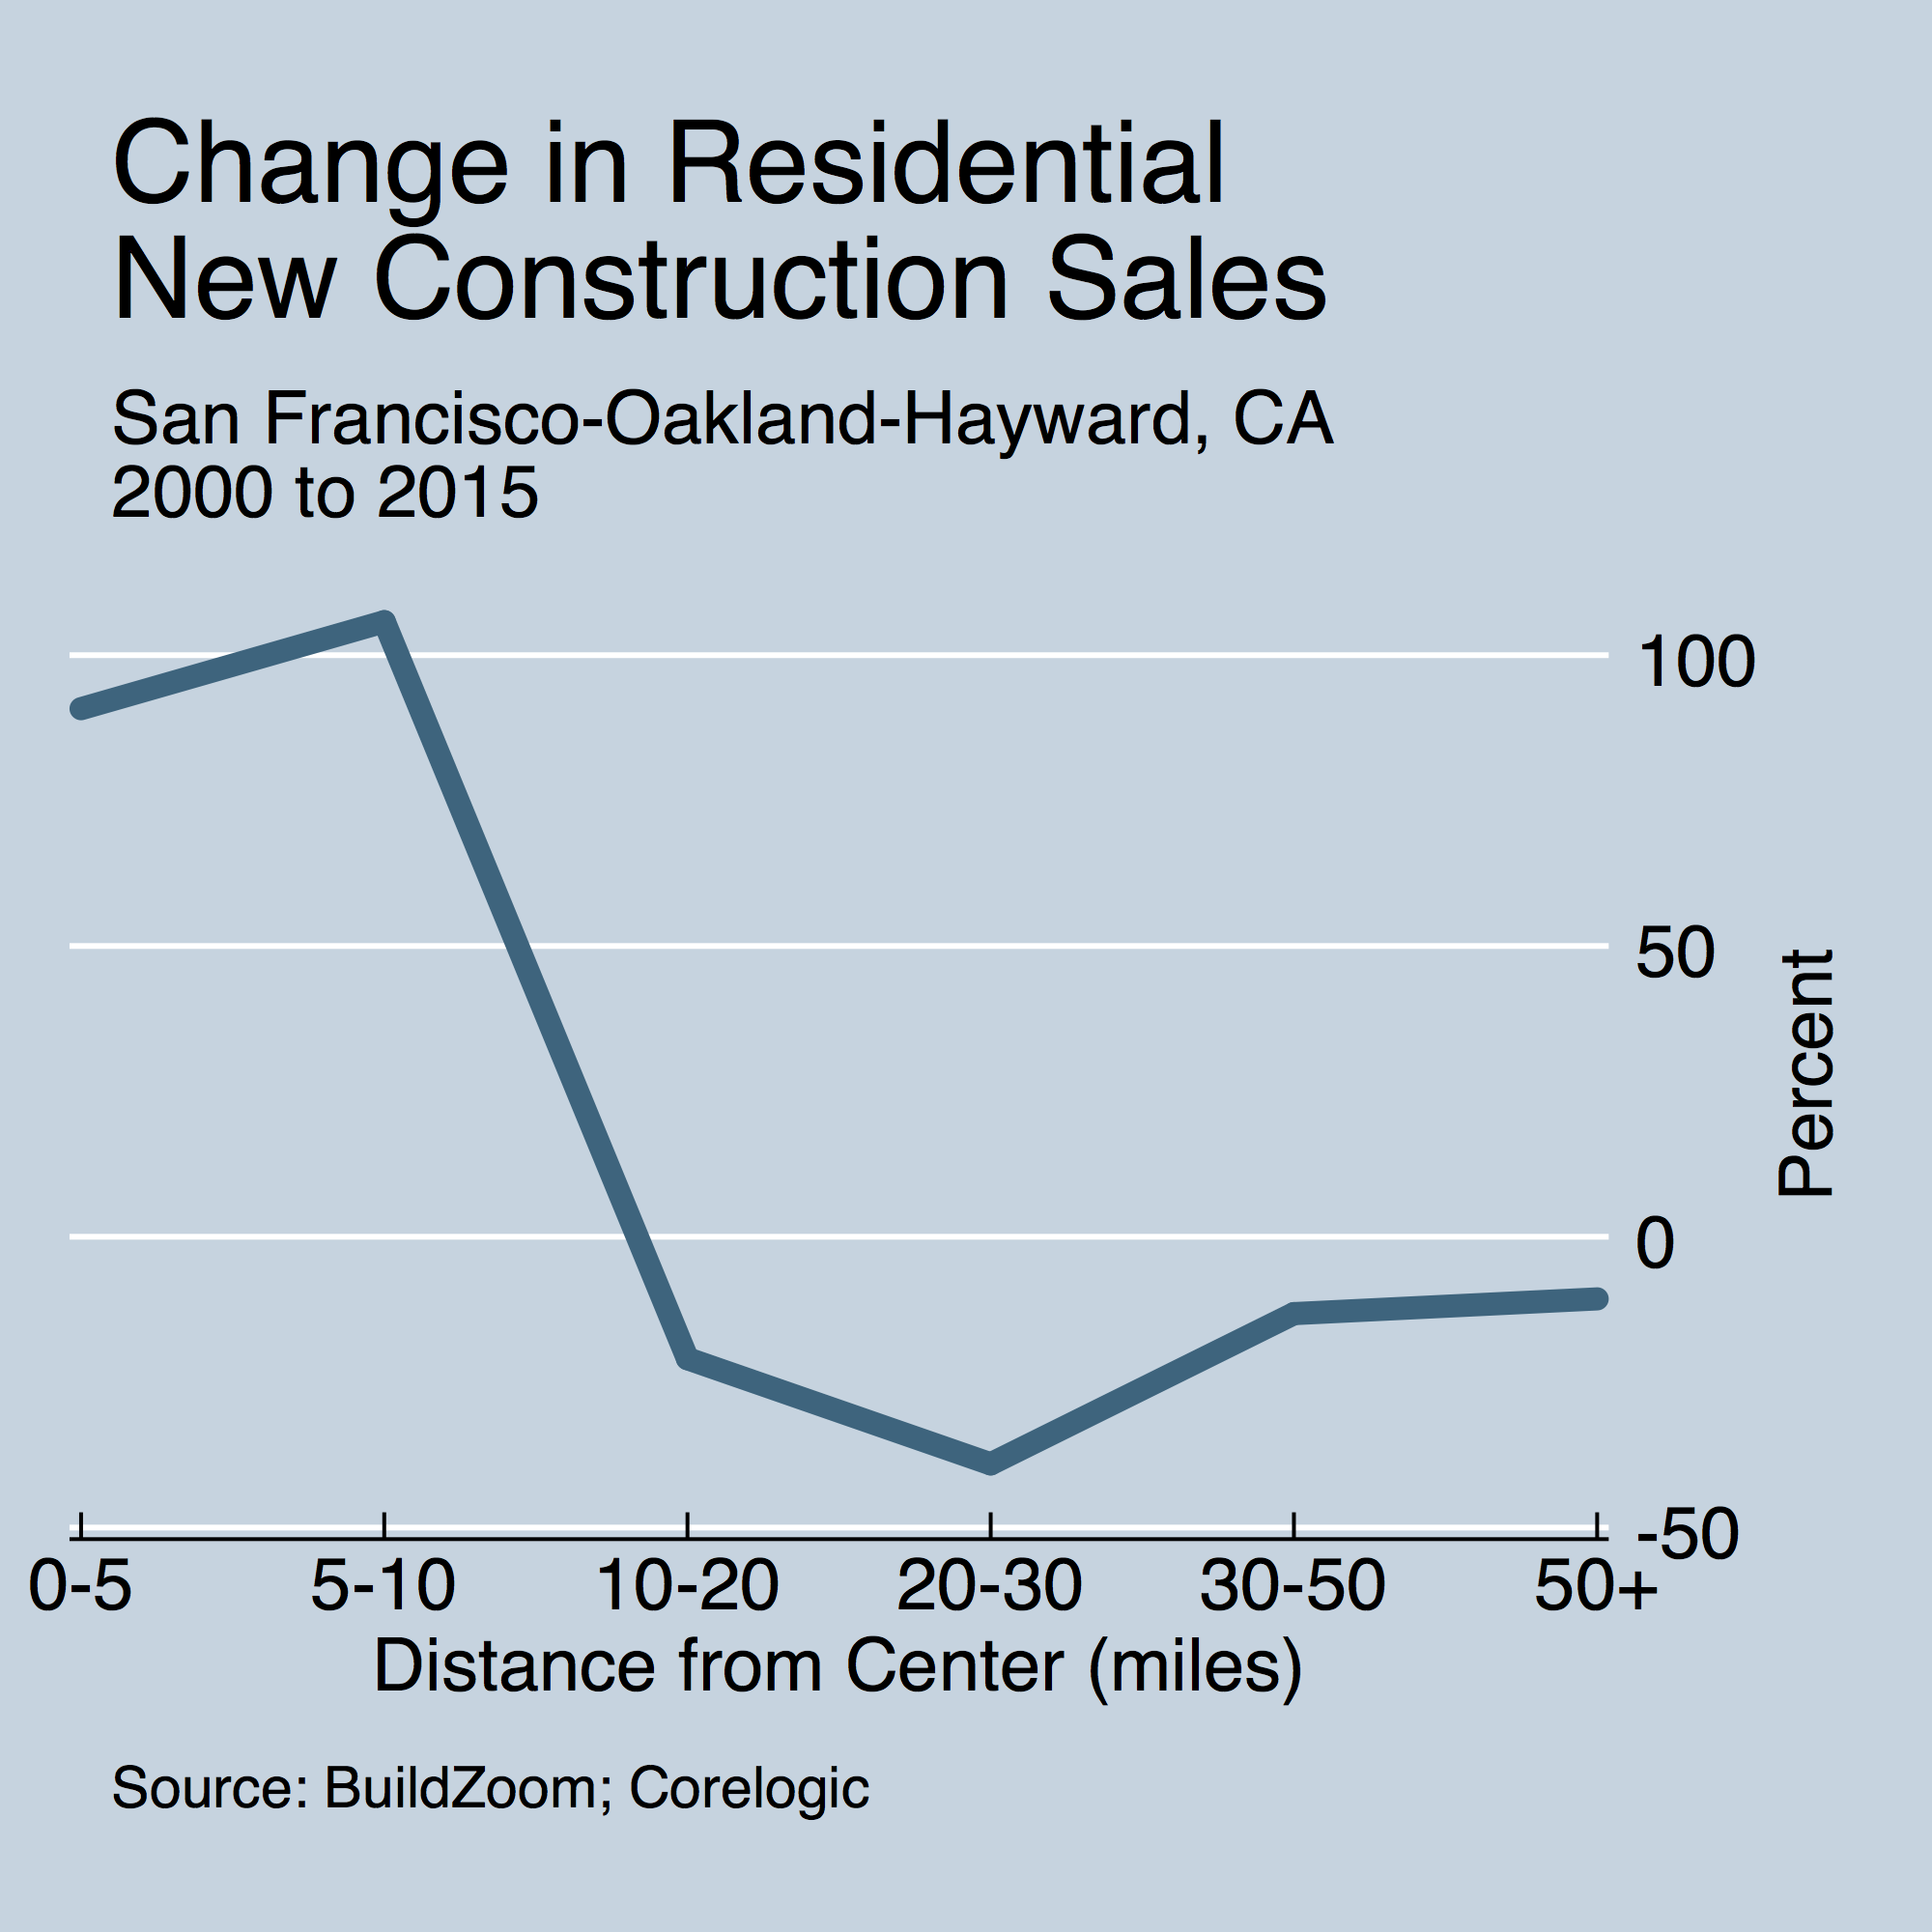 pct_change_15_vs_00_by_dist_to_cbd_newconstructionsales_san-francisco-oakland-hayward-ca